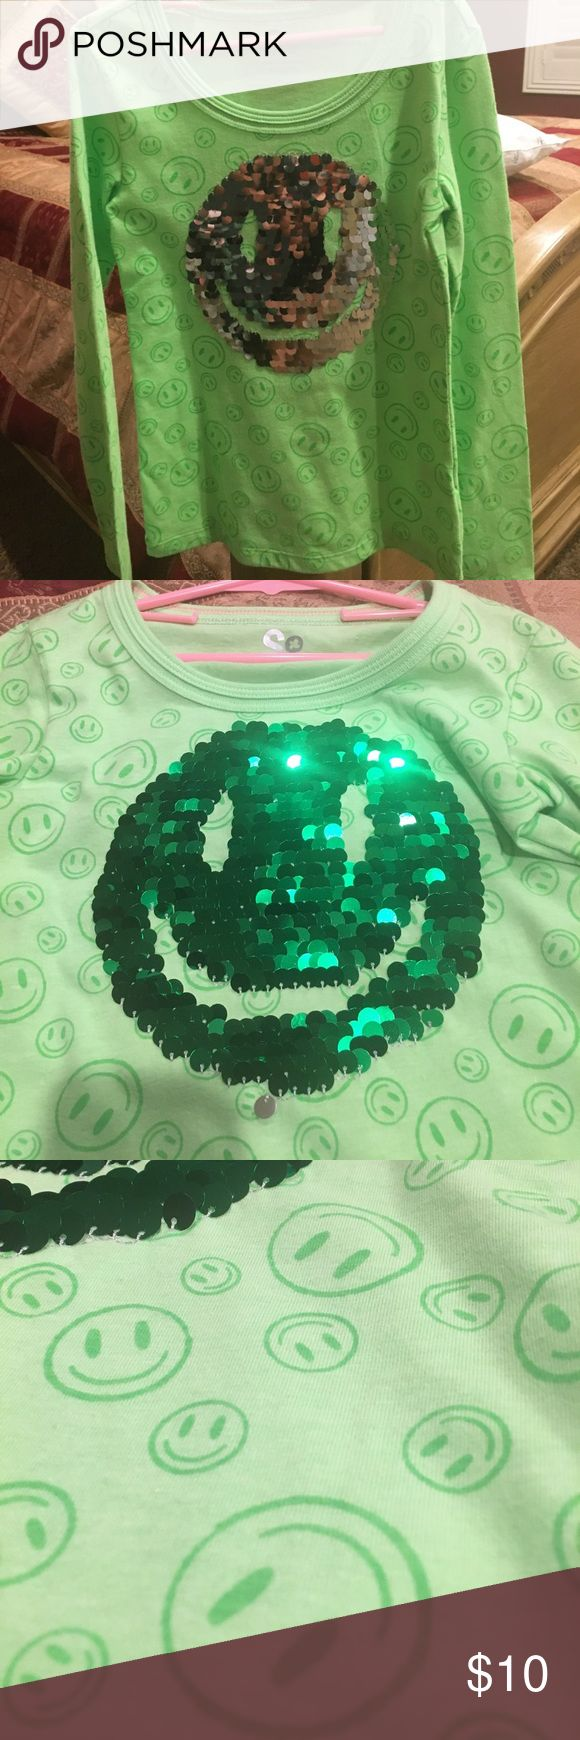 Happy face shiny long-sleeves shirt reversible Adorable green happy face long sleeve shirt with shiny sequined happy face in the middle. Push all the sequence in One Direction and the happy faces silver. Push all the secrets in the opposite direction and the happy face is a beautiful emerald green. So much fun for your child!  Size girls 7/8 SO Shirts & Tops Tees - Long Sleeve